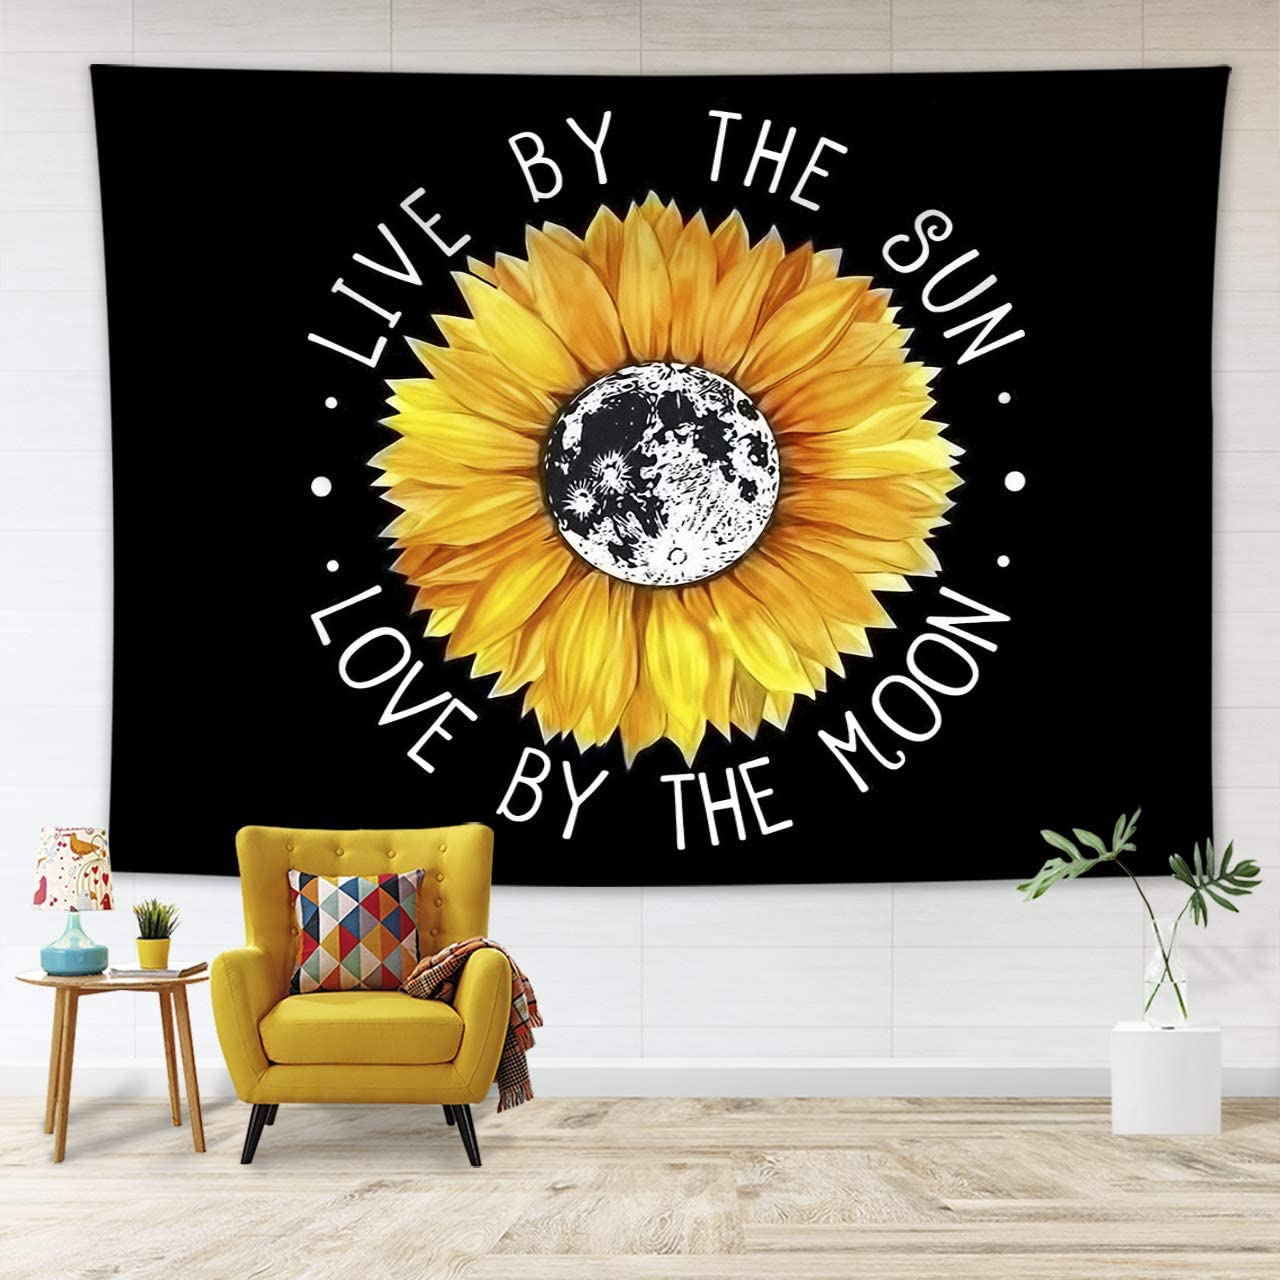 LB Bright Yellow Flower Tapestry Boho Style Sunflowers Tapestry with Motivation Quote Live by The Sun Love by The Moon Tapestry for Bedroom Living Dining Room Dorm Decor 93 Wx71 L